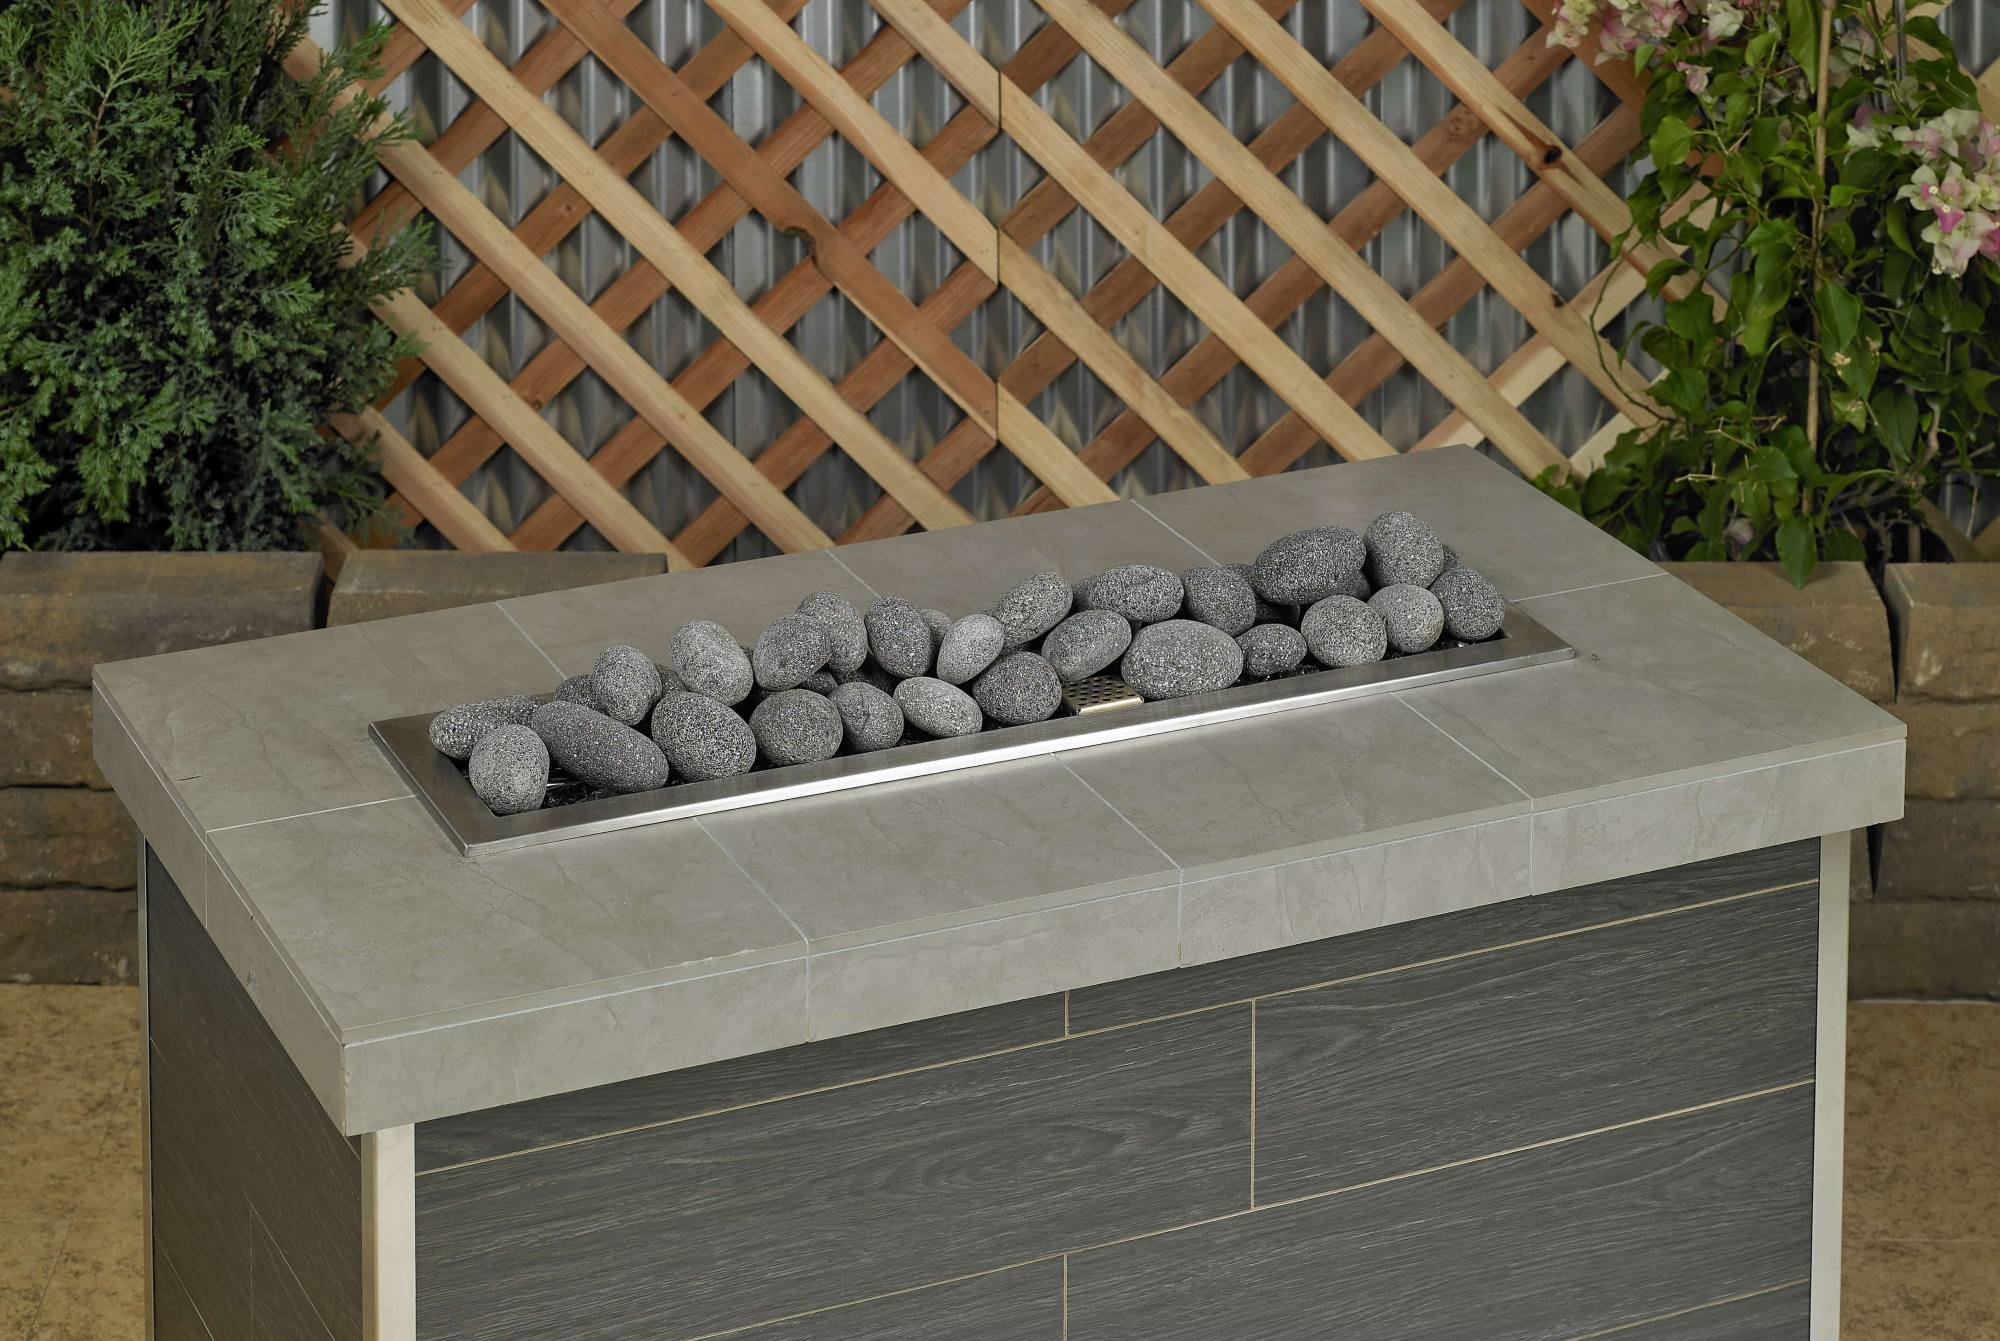 Large Gray Lava Stone 2 - 4 inches